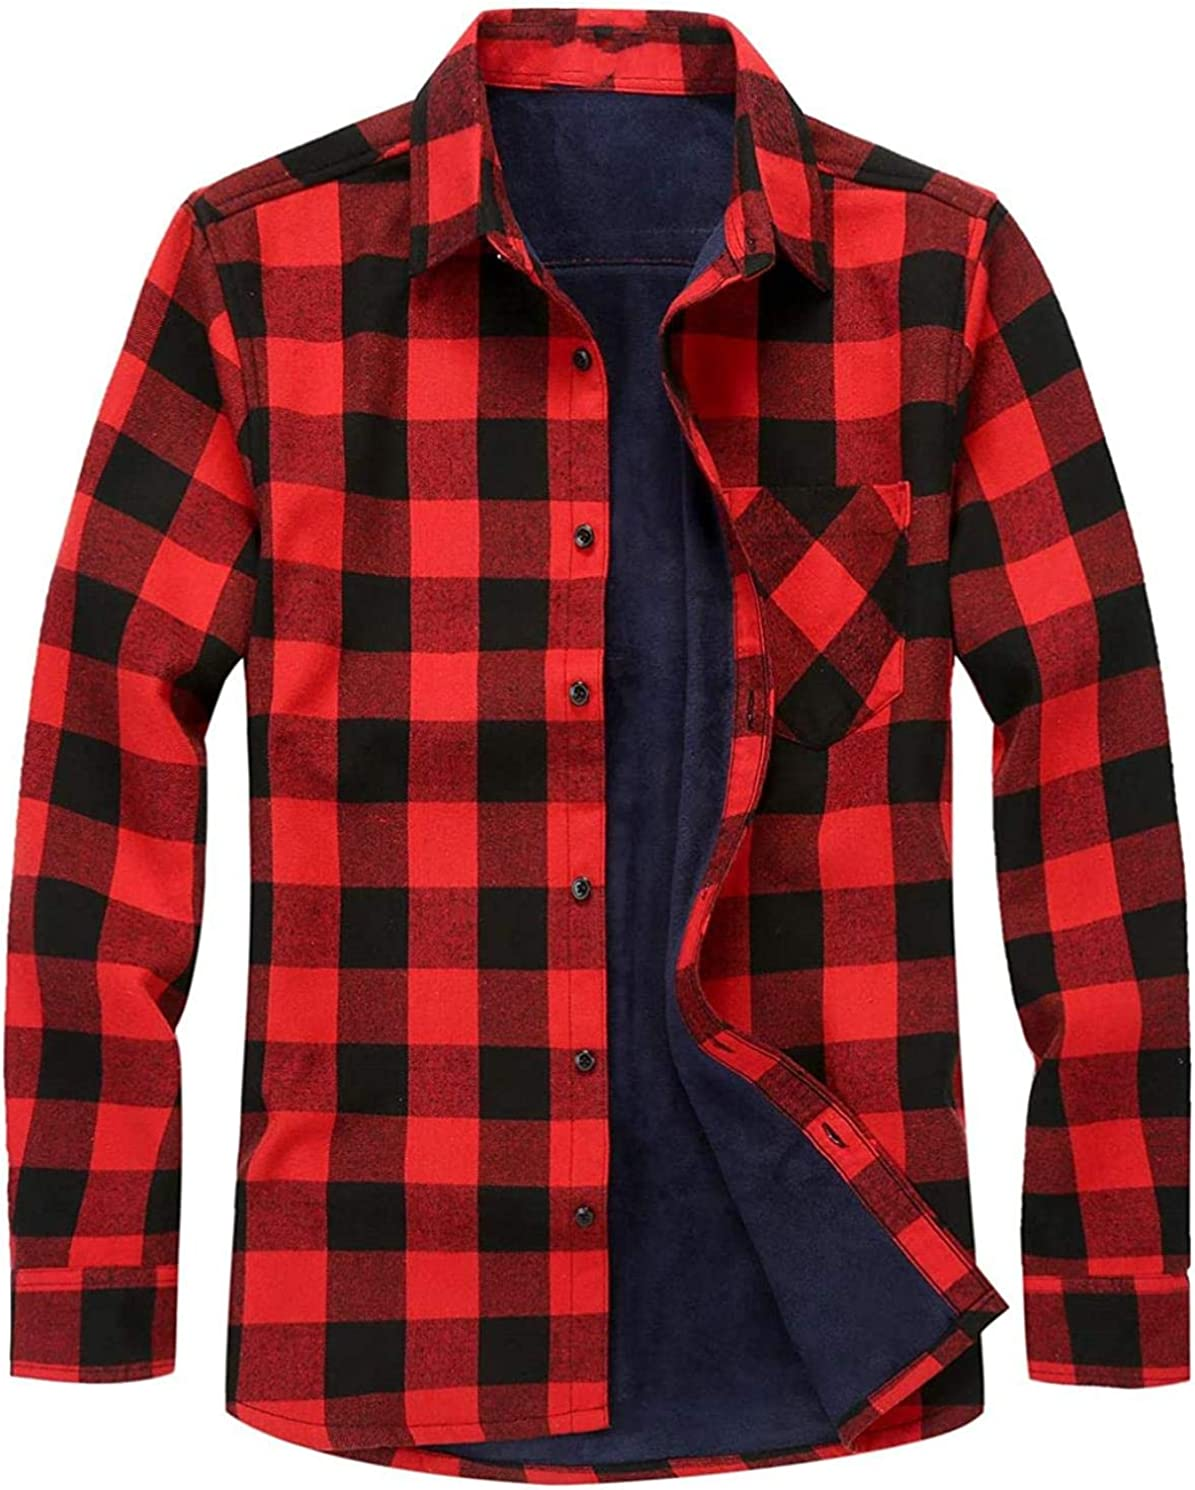 Men's Casual Long Sleeve Fleece Lined Plaid Flannel Buttoned Overshirts Jacket